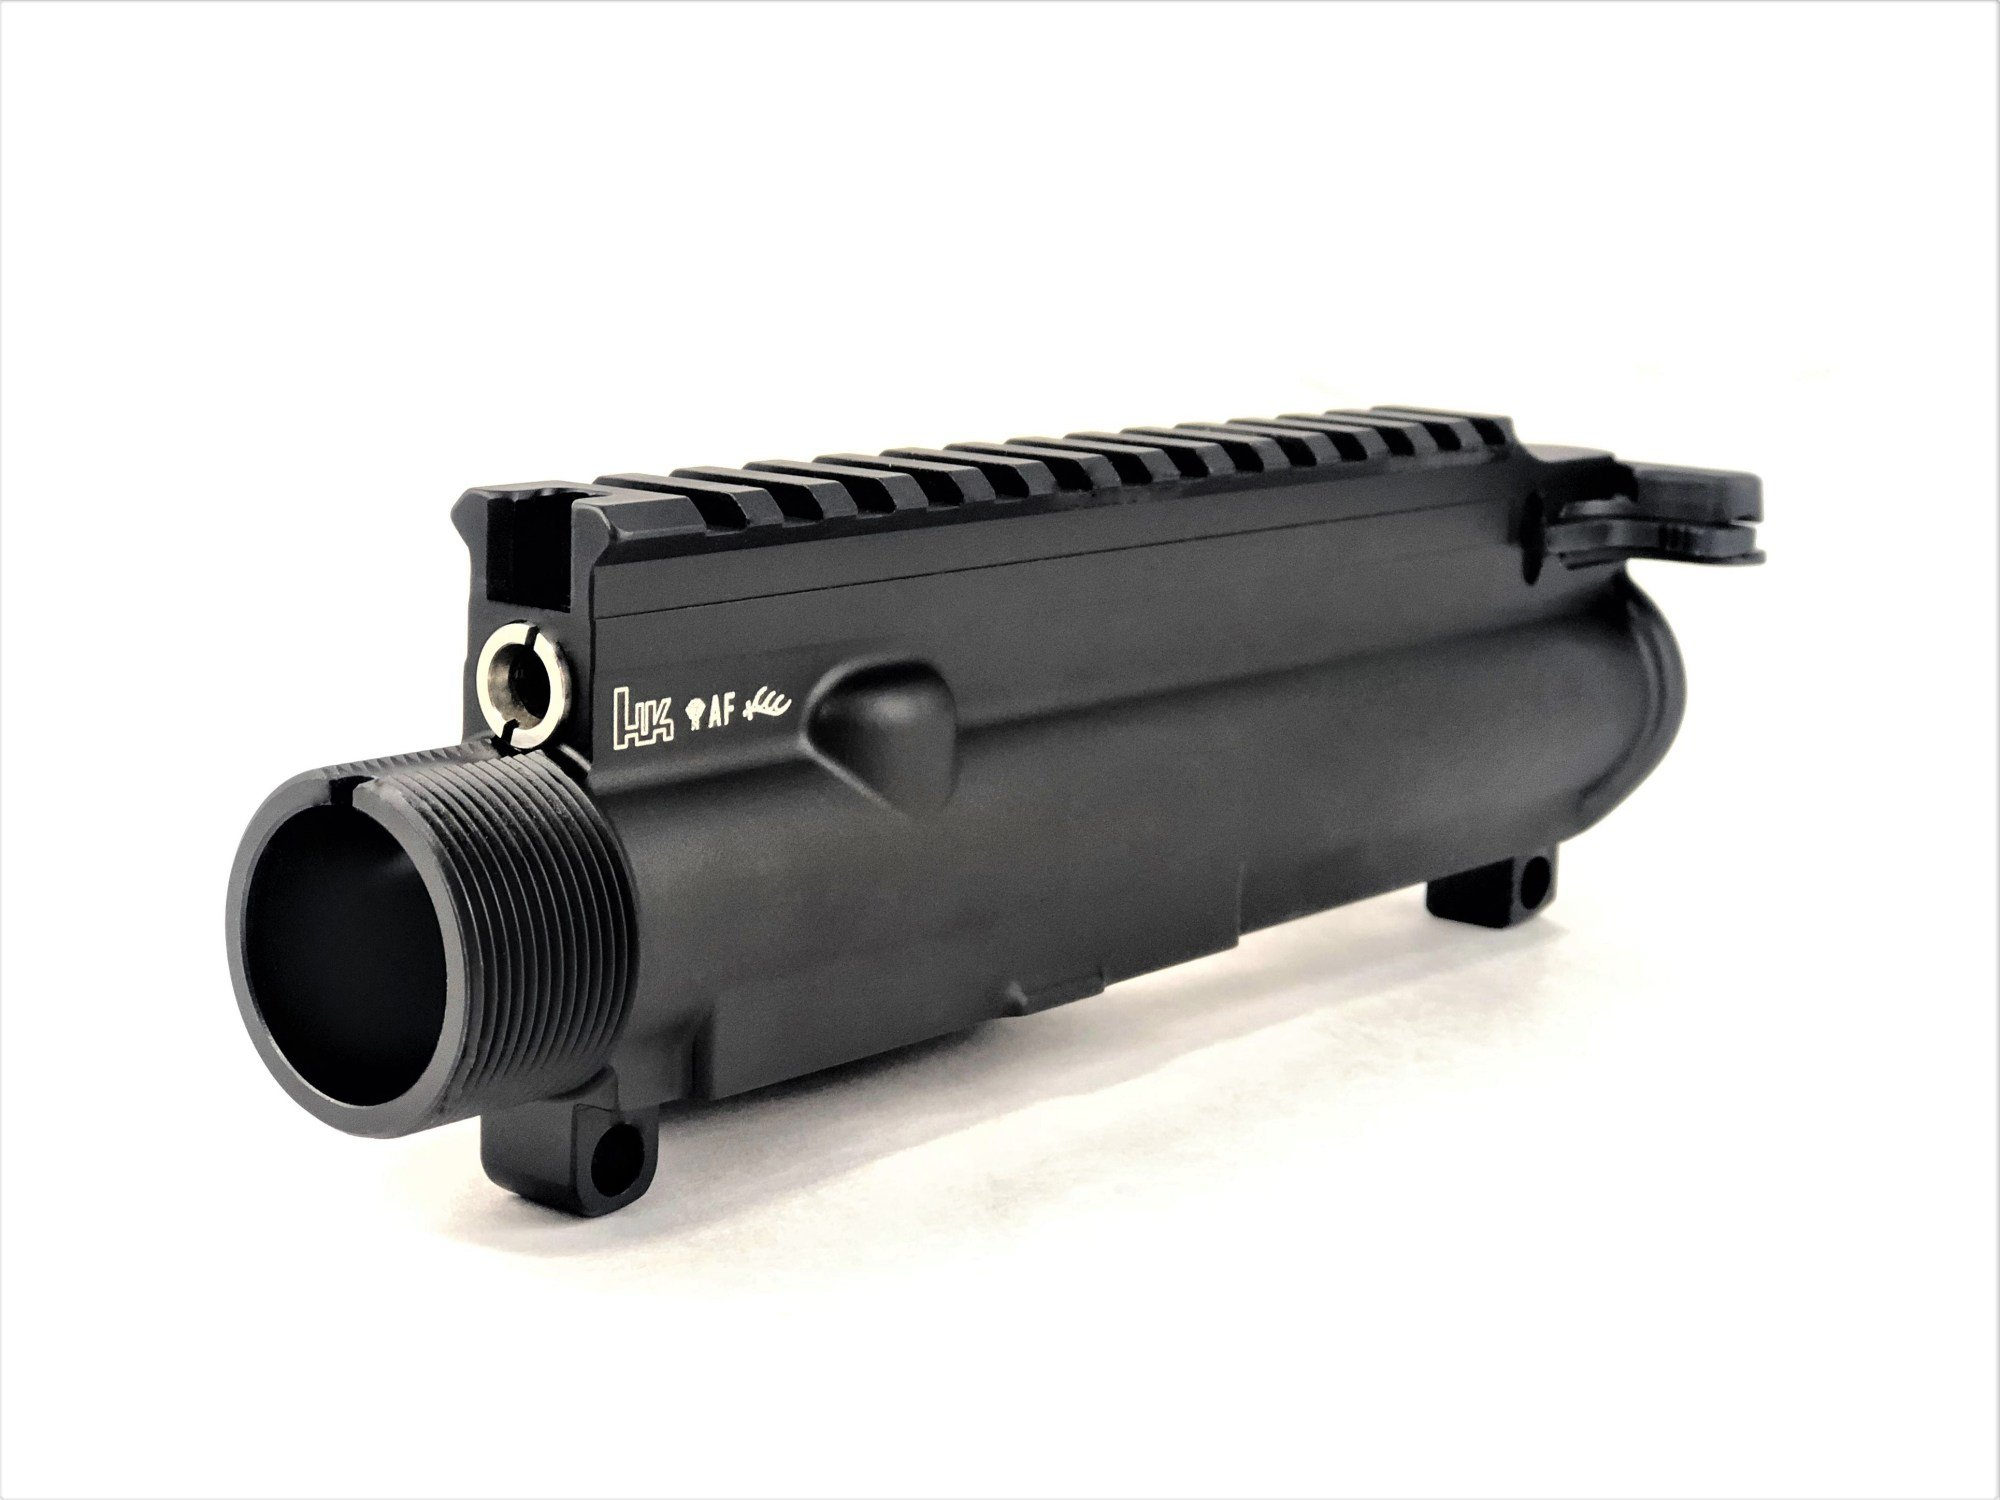 HK416 A3 5 56 Complete Upper Receiver Assembly HK Marked, Factory Original  Parts Installed - $699 99 + Free Shipping